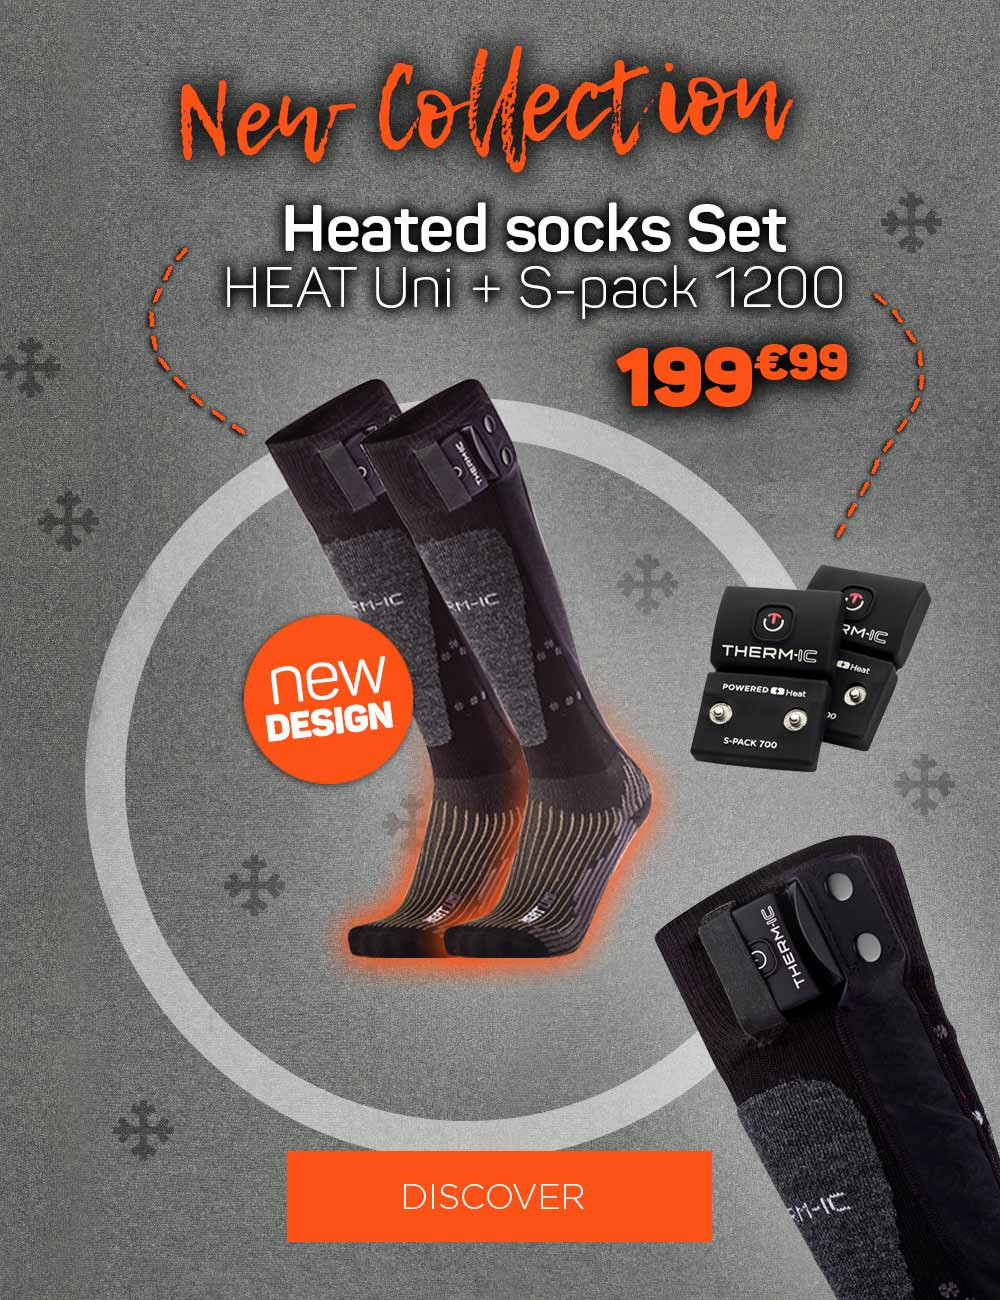 Discover our new collection of heated socks